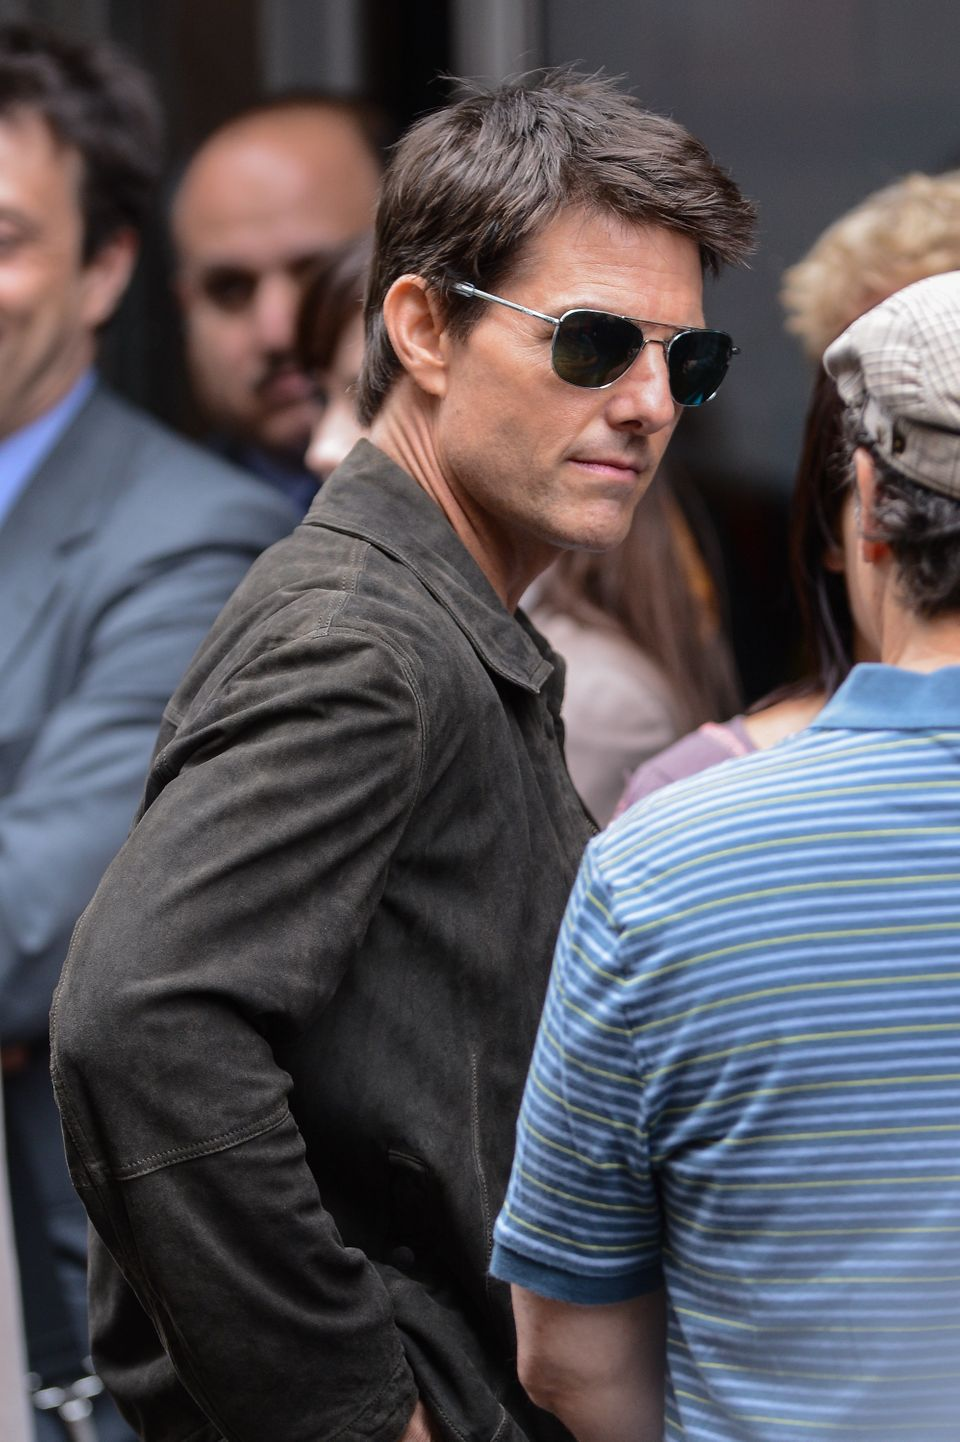 Tom Cruise films a scene at the 'Oblivion' movie set at the Empire State Building on June 13, 2012 in New York City.  (Photo